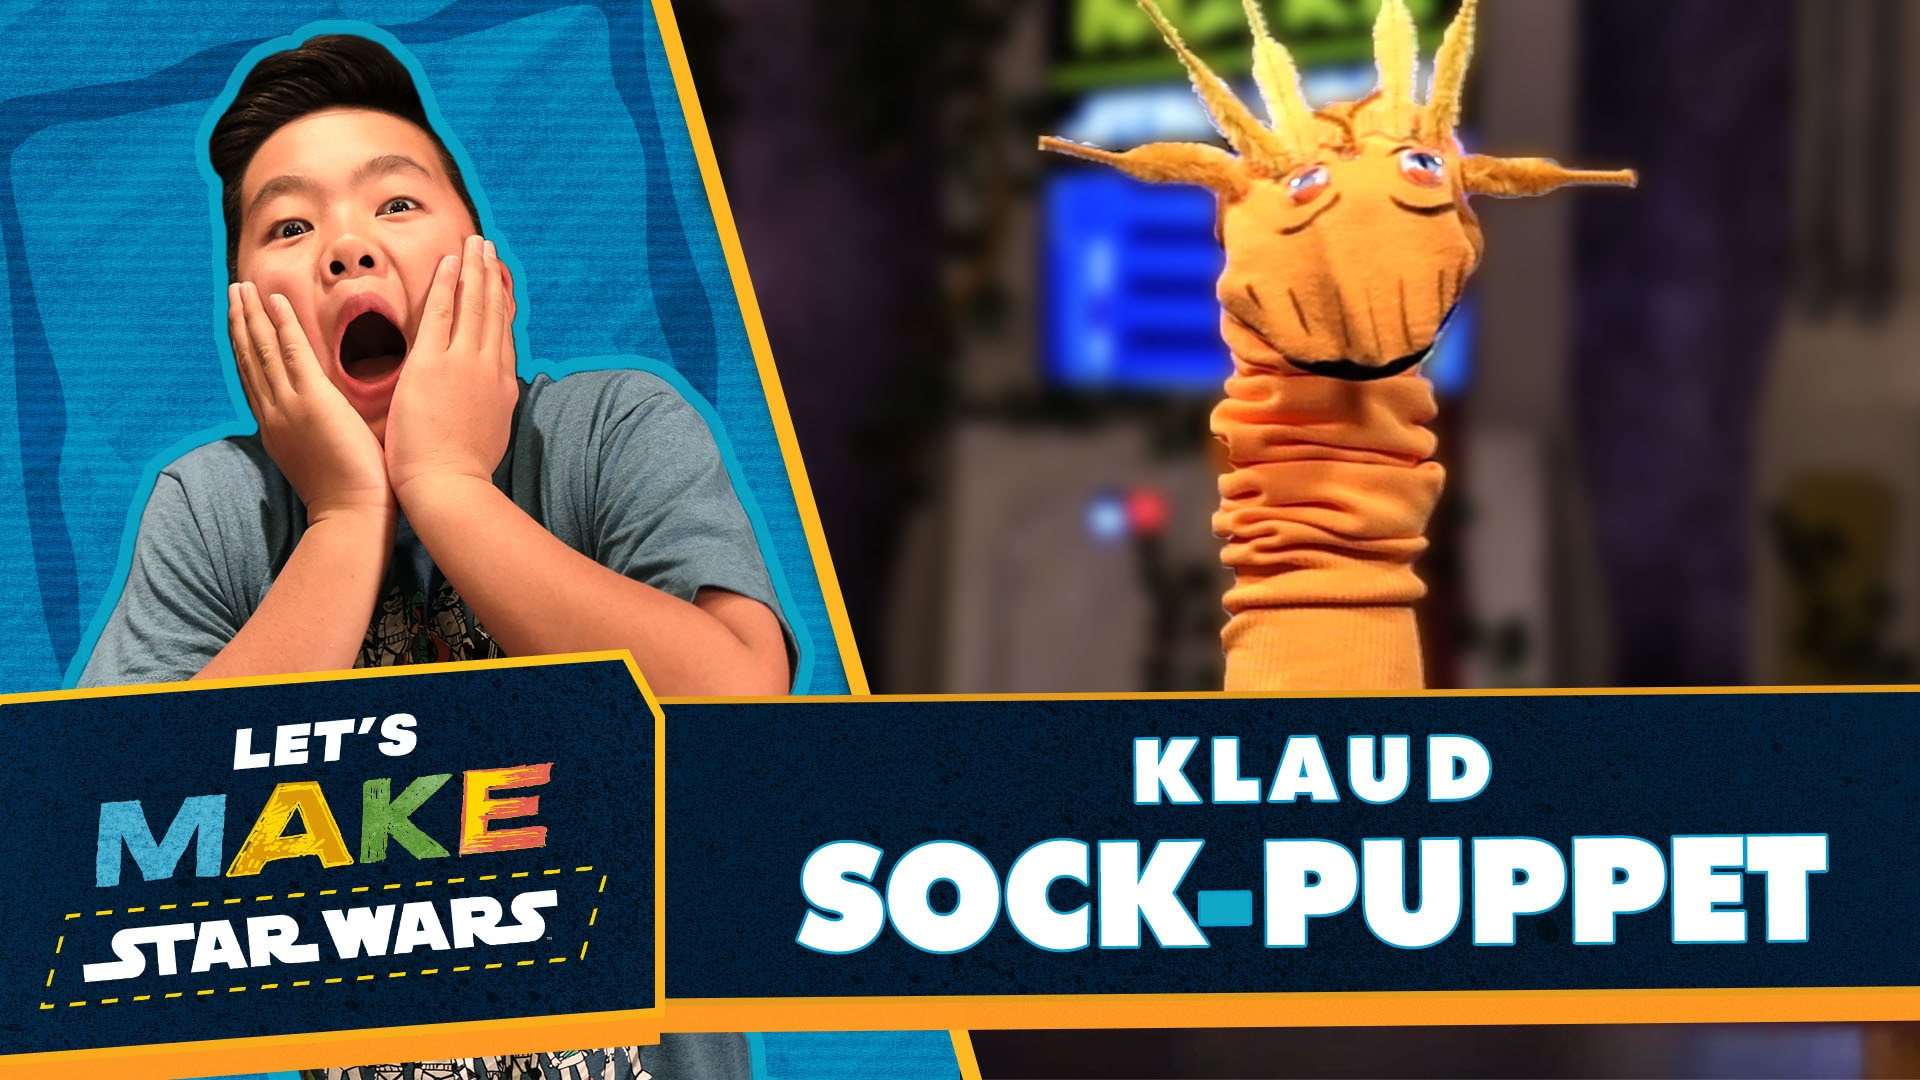 How to Make a Klaud Sock Puppet | Let's Make Star Wars